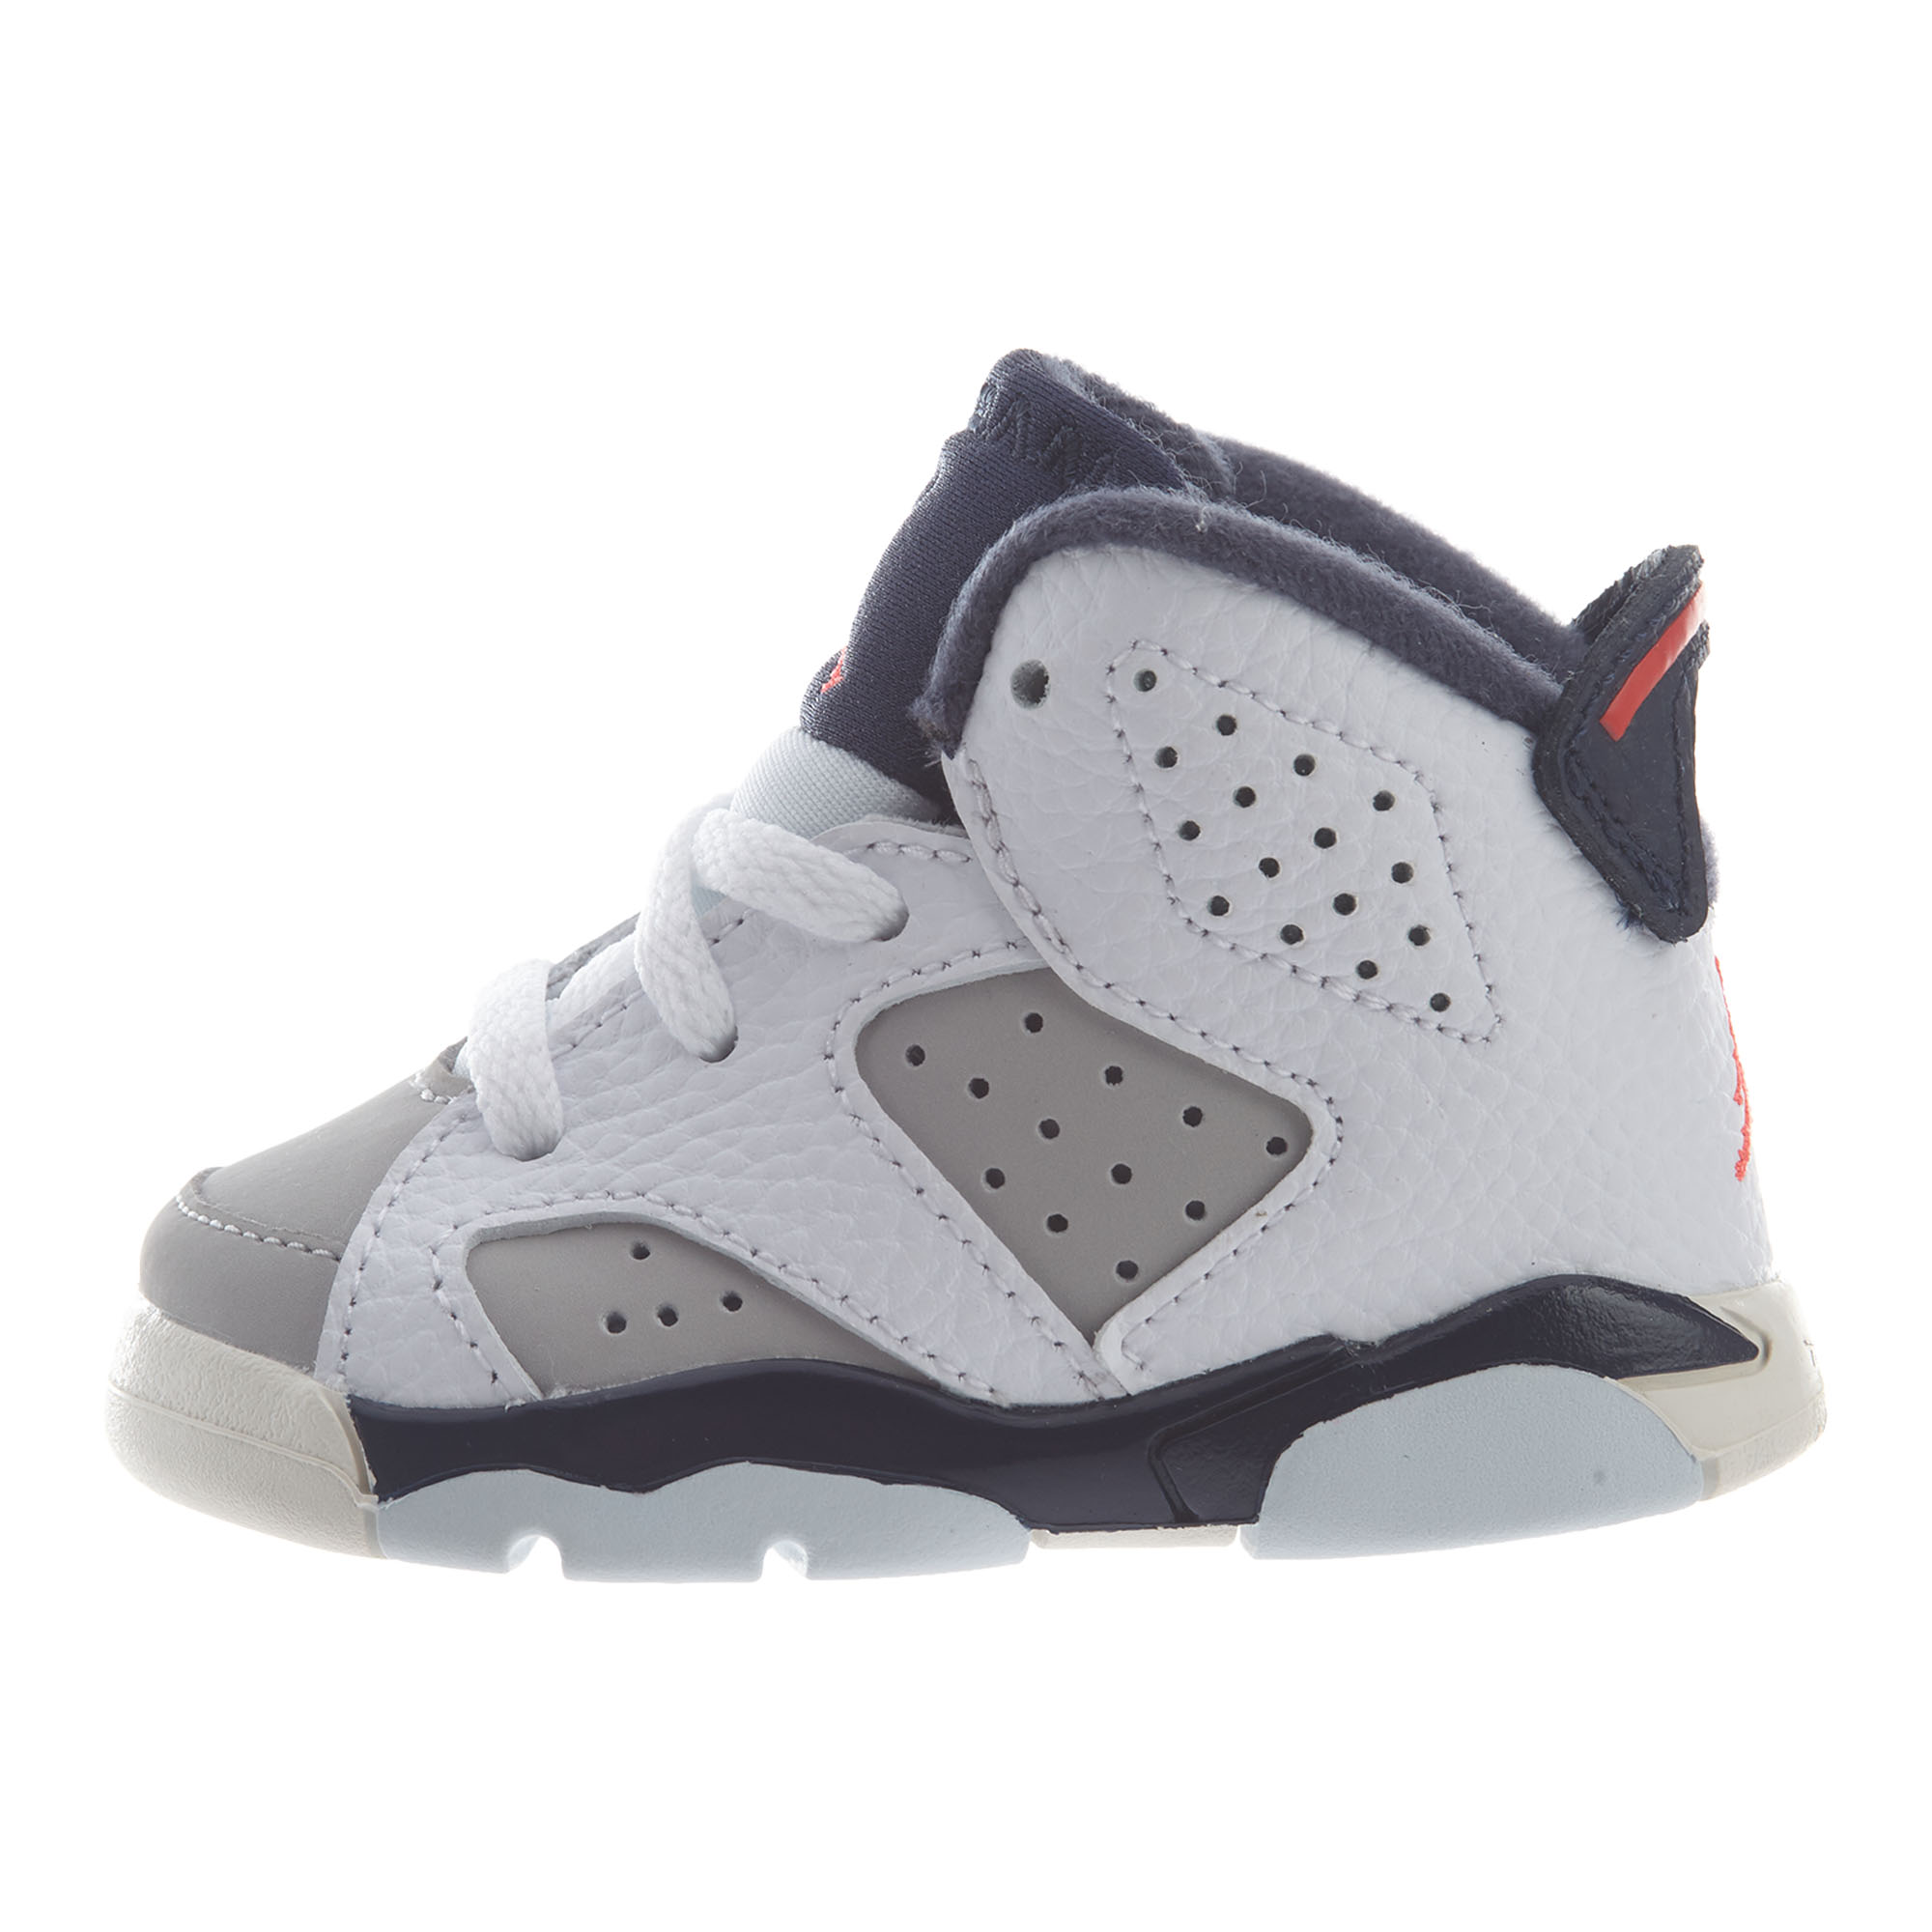 7982a9c012d149 Details about Jordan Toddlers 6 Retro Tinker Sneakers 384667-104